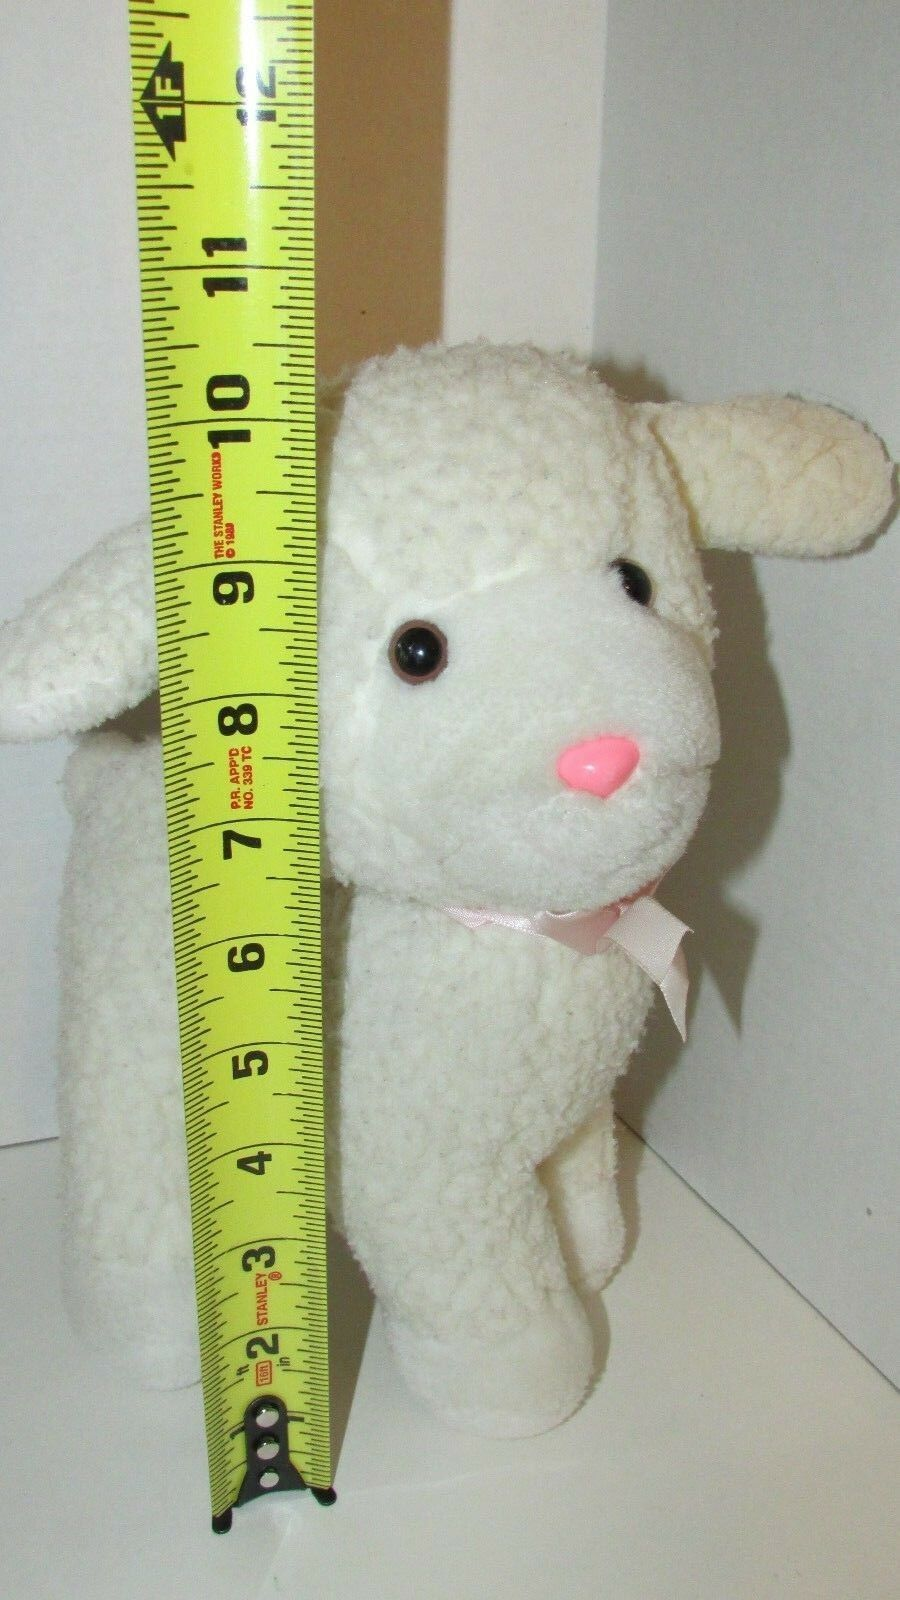 Enesco plush firm standing lamb sheep nubby fur pink bow older off-white cream image 2